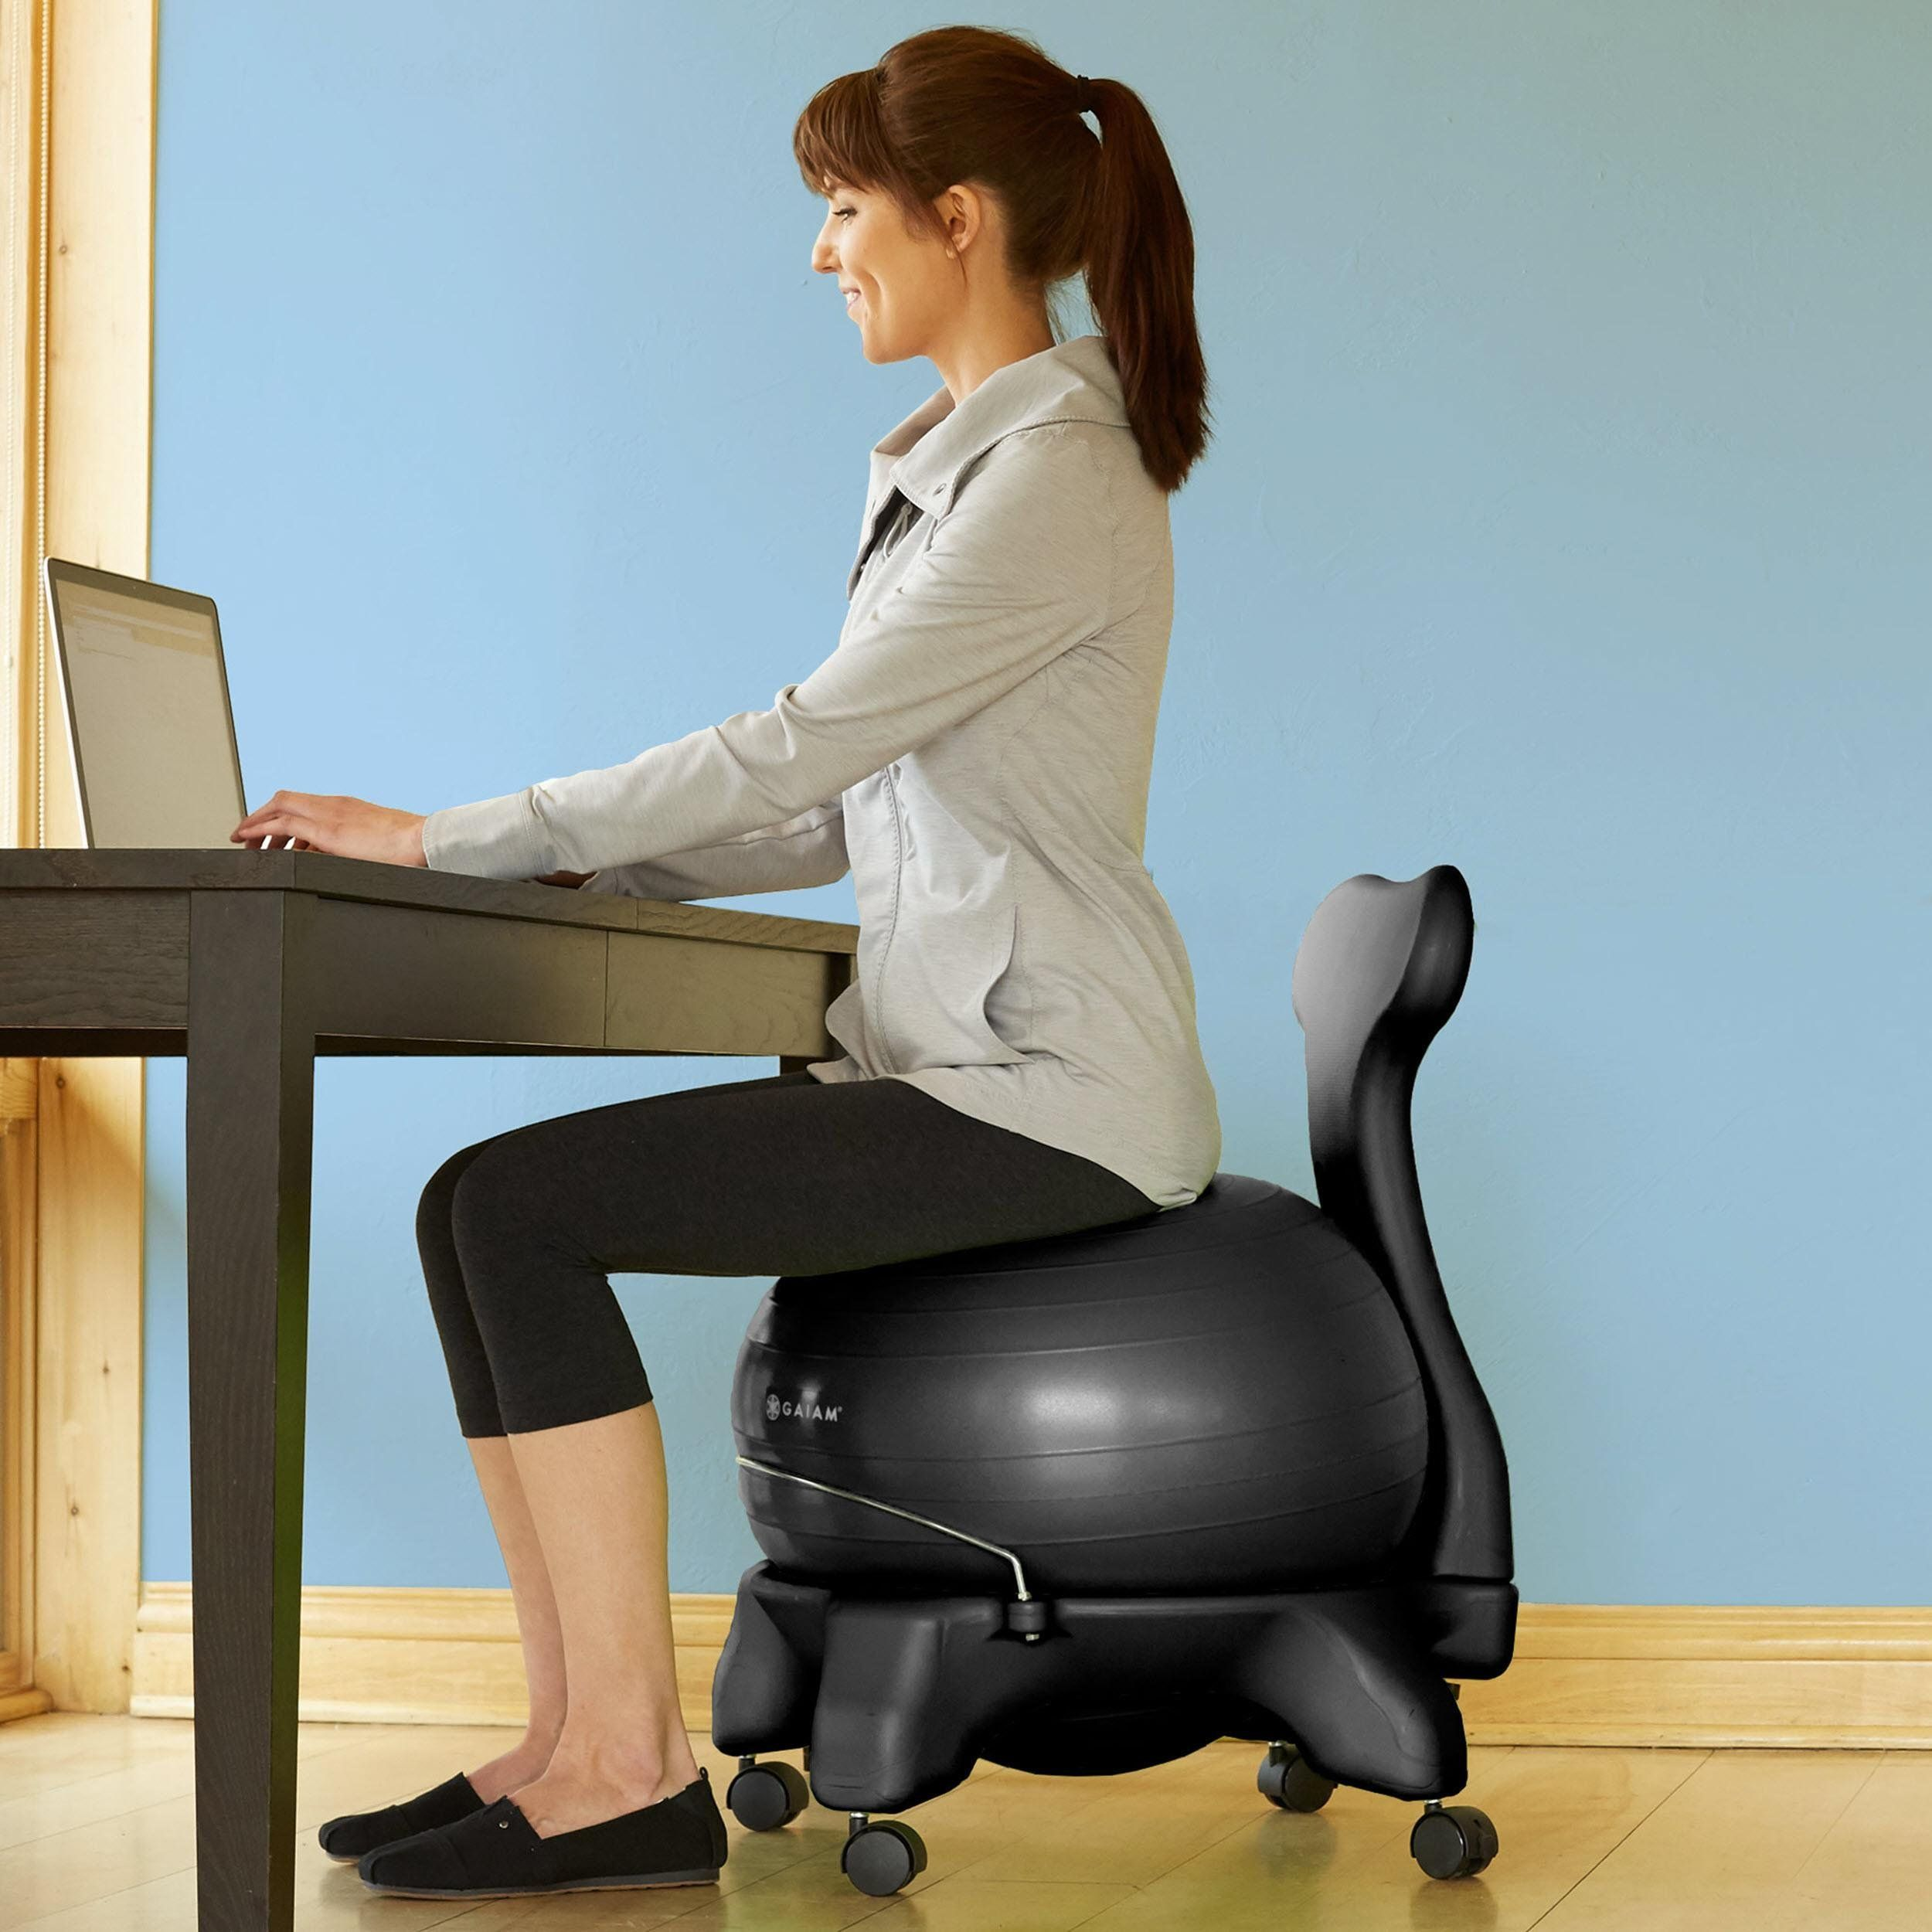 Ball Chair Amazon Steel Without Handle Com Gaiam Balance Black Exercise Balls Sports Outdoors